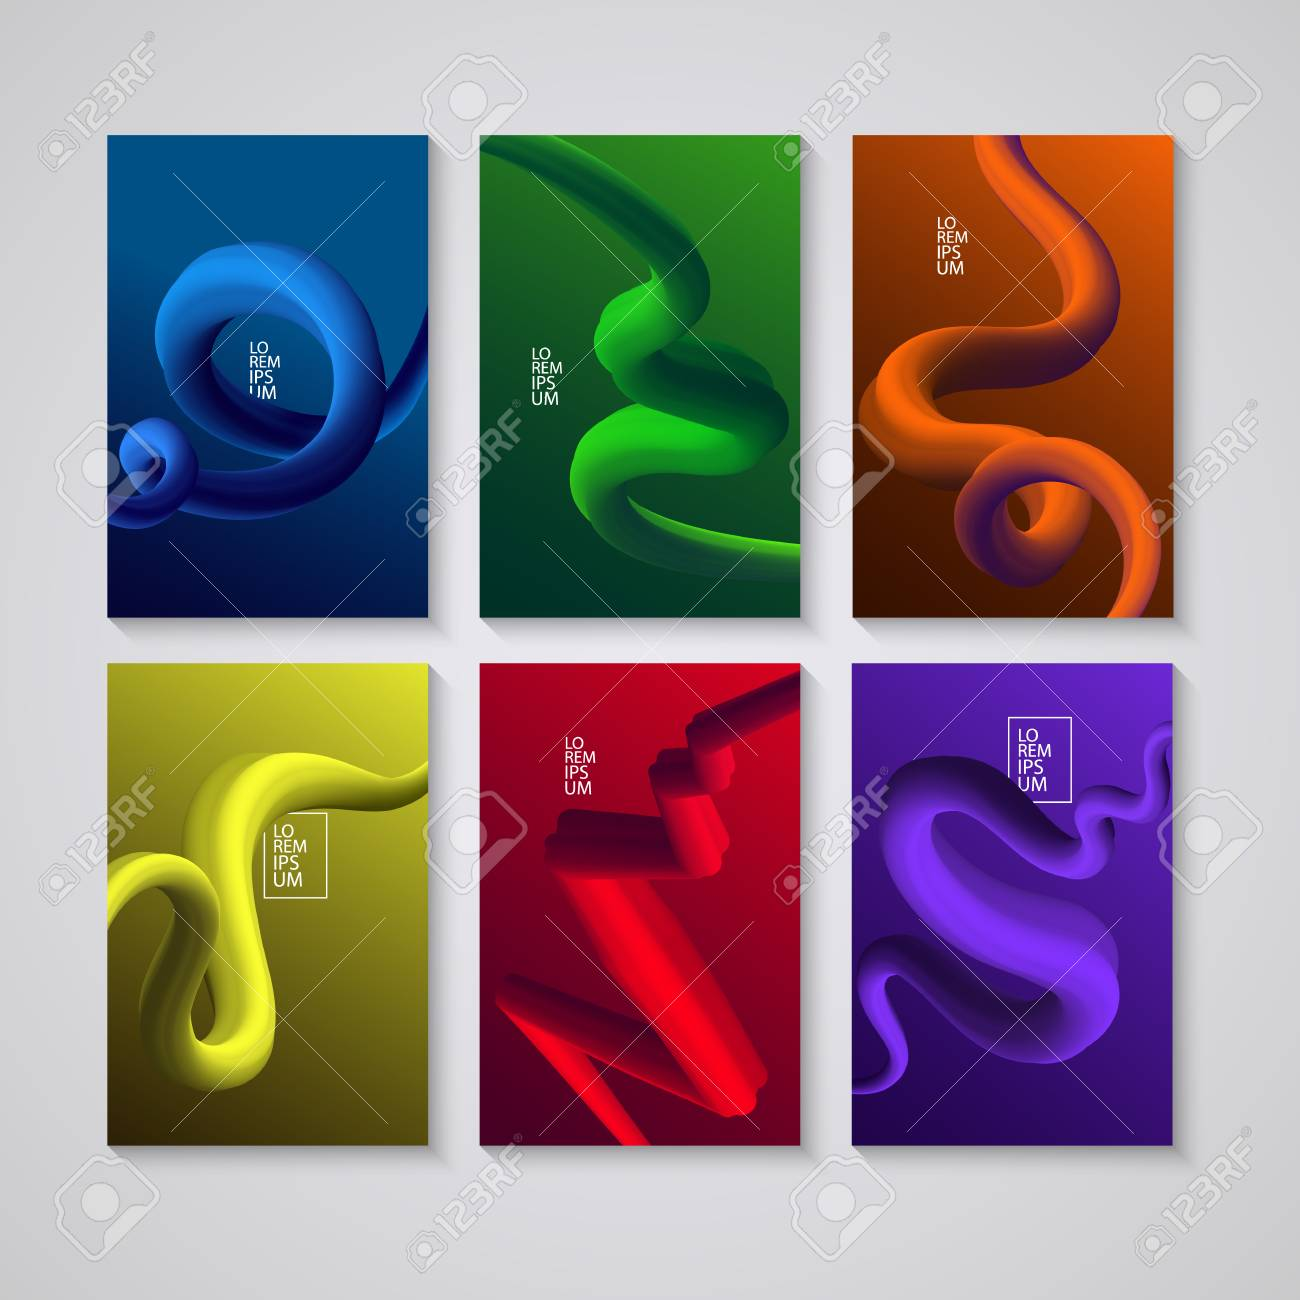 Cover design  Liquid colorful shapes backgrounds  Futuristic